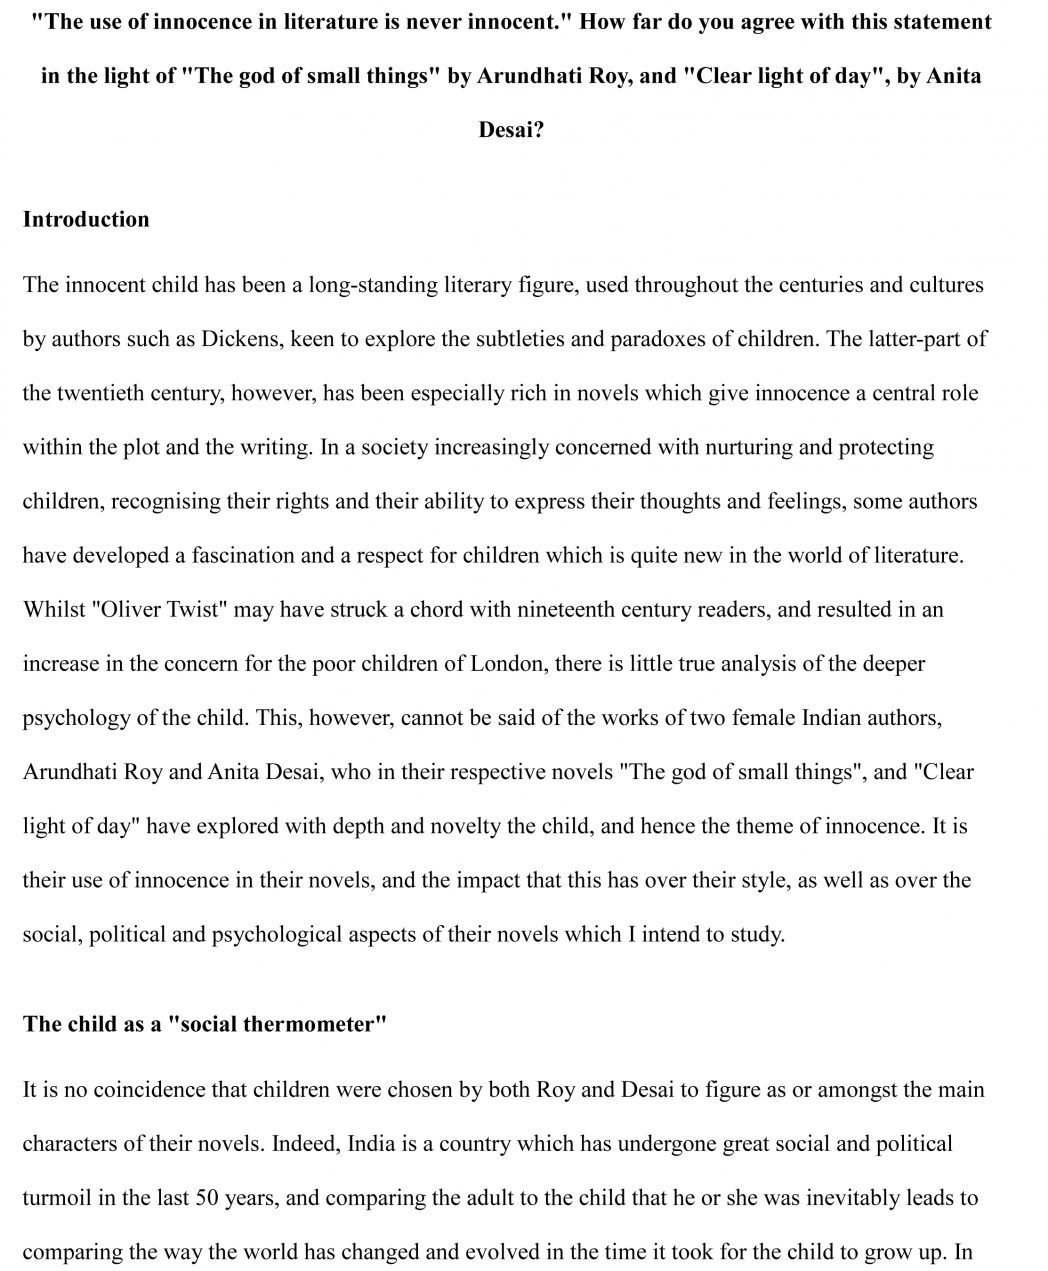 008 Interpretive Essay Example Examples Poem Essays On Poems Doit Ip Myp Personal Project Alevel Course Work S Outstanding Sample Thesis Statement Writing Prompts Full